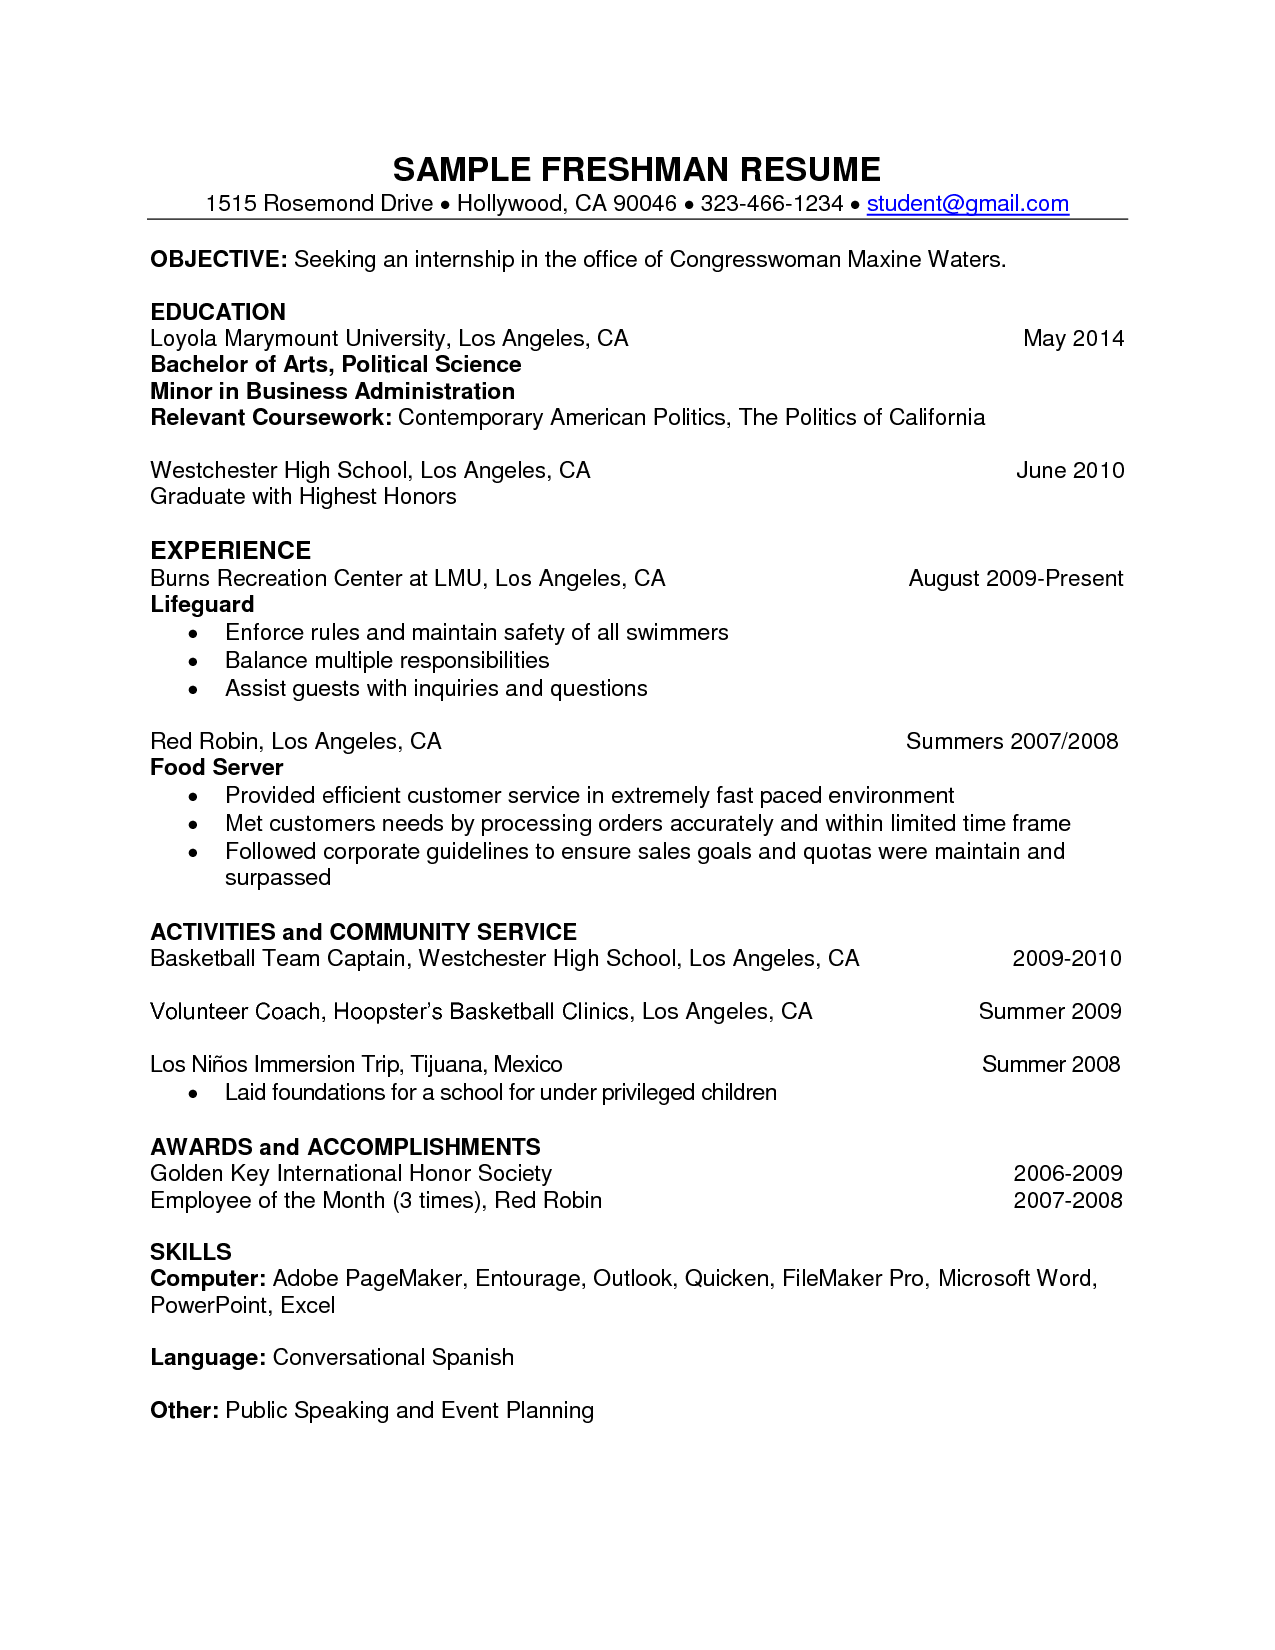 Business Resume Templates Templates For Freshers Httpwwwresumeformatsresume